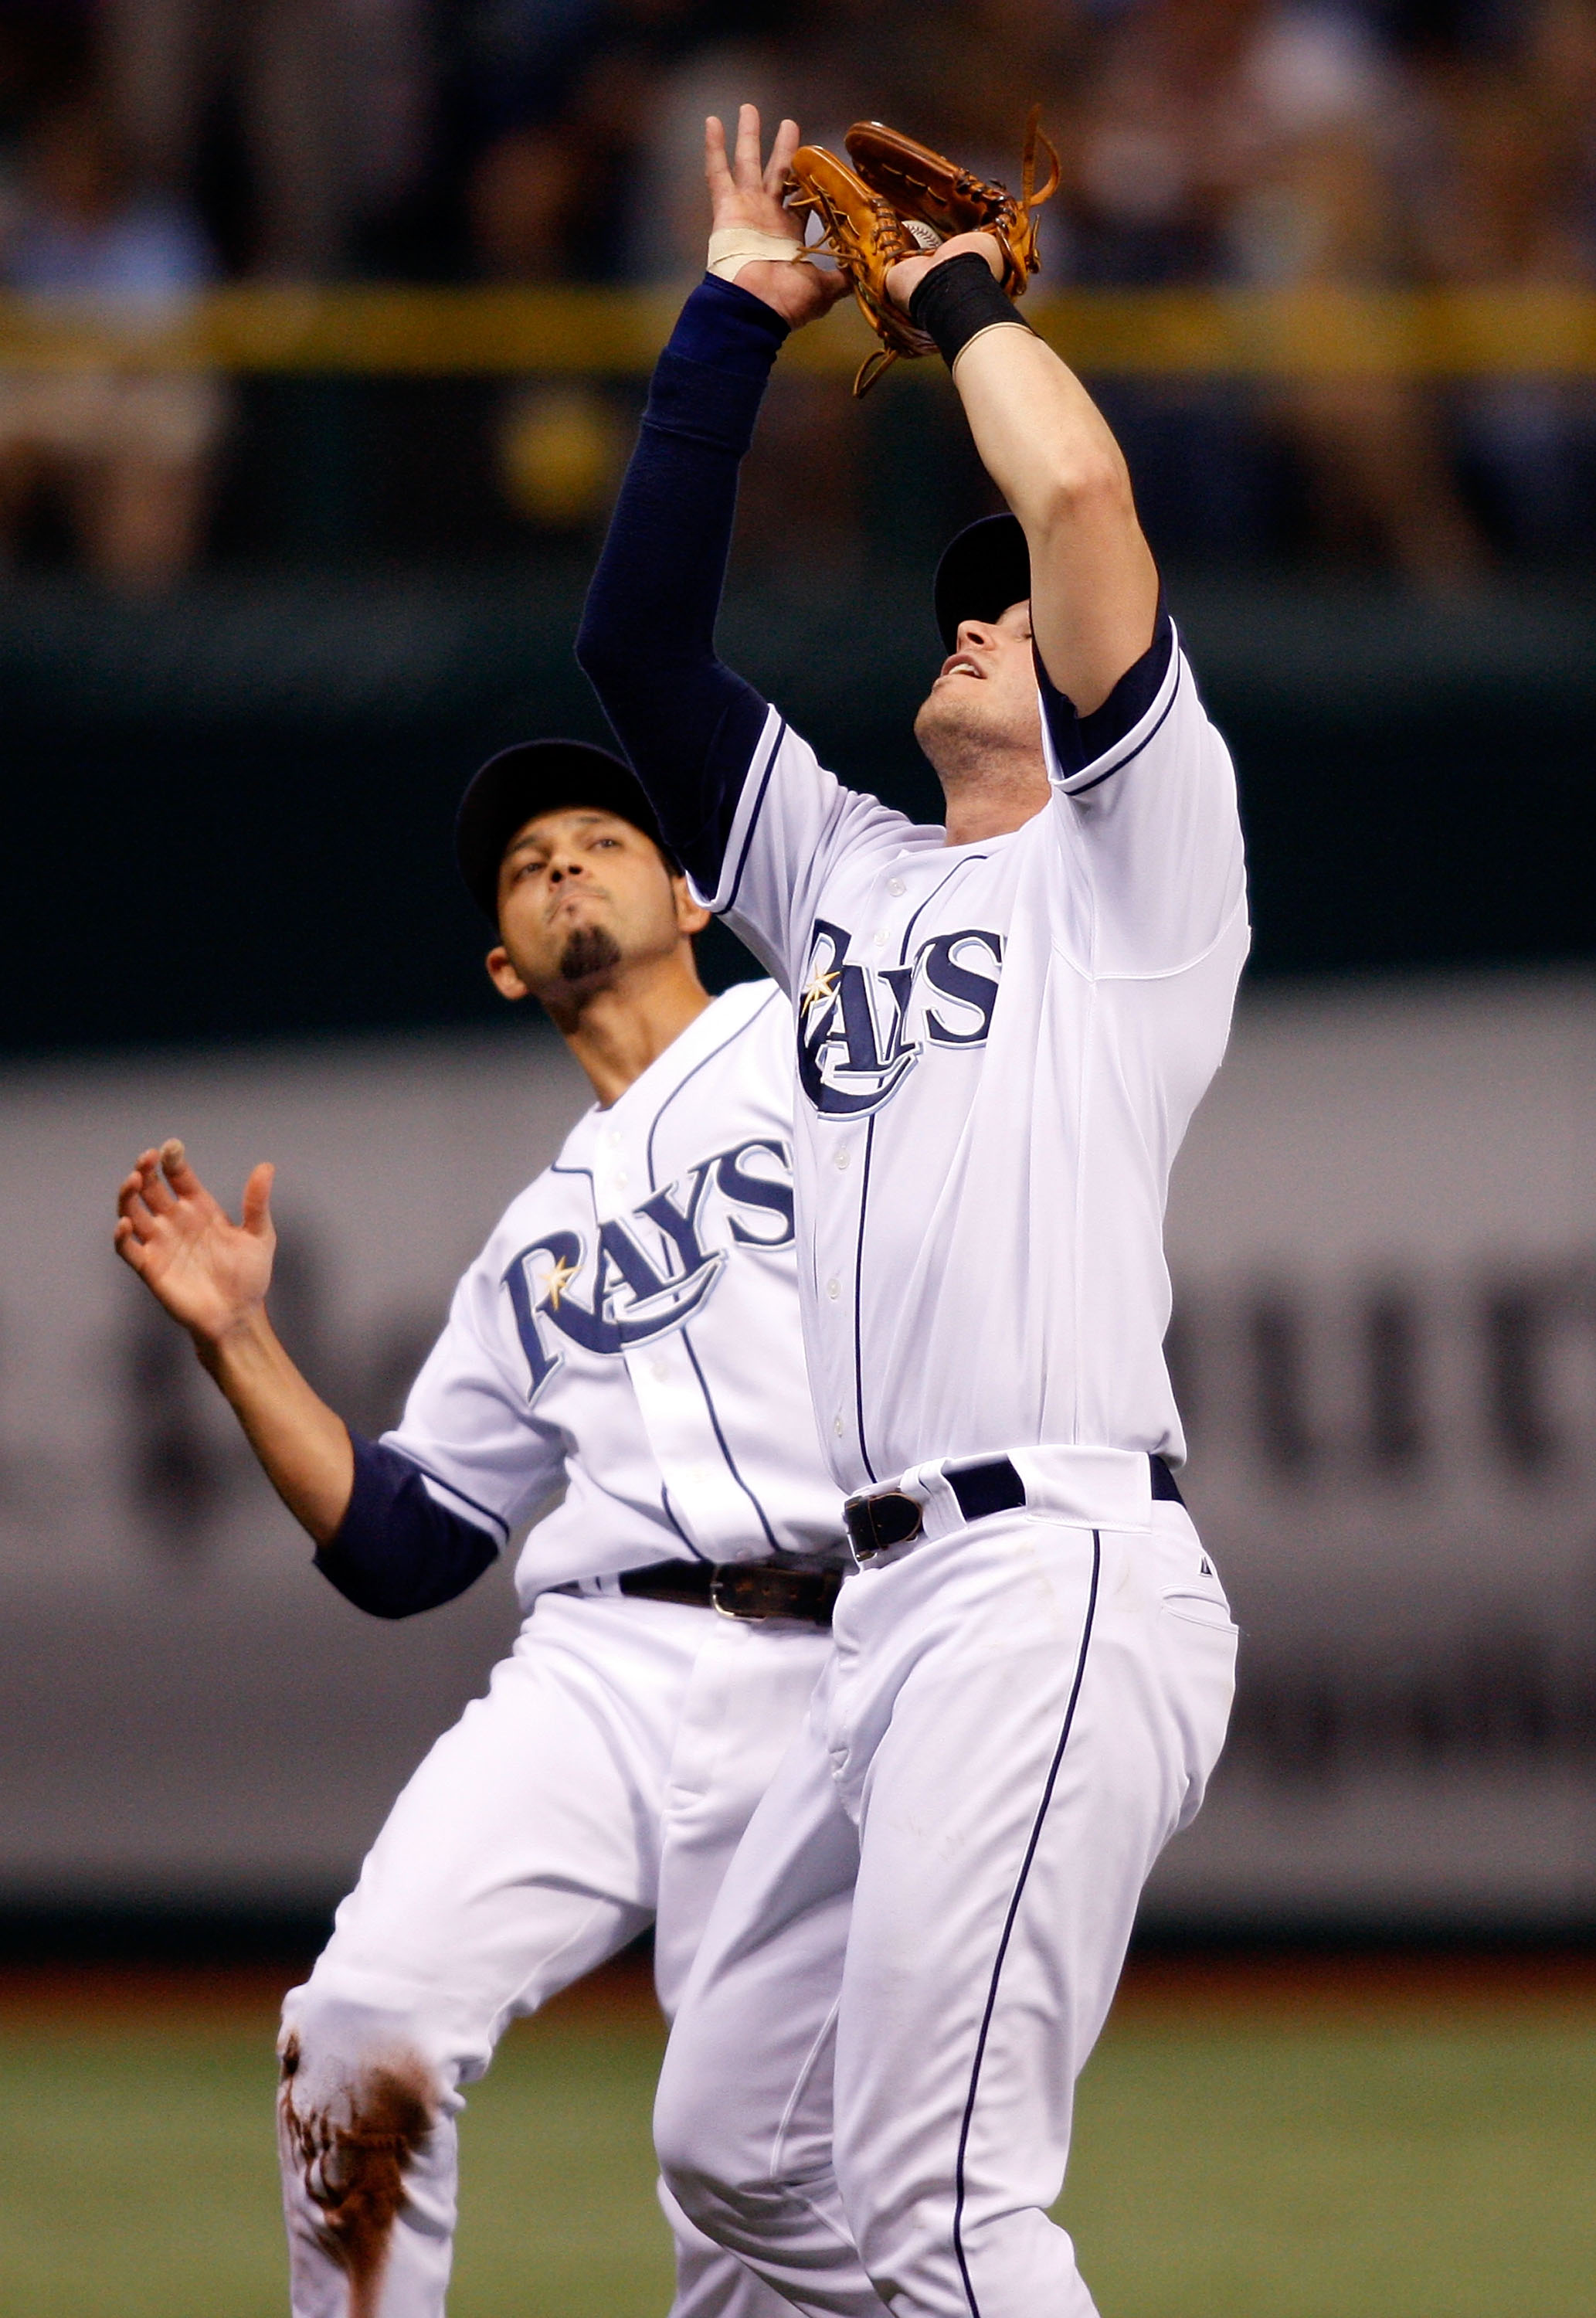 ST. PETERSBURG, FL - SEPTEMBER 19: Infielder Evan Longoria #3 of the Tampa Bay Rays catches a foul ball as shortstop Jason Bartlett #8 is there to back him up against the Minnesota Twins during the game on September 19, 2008 at Tropicana Field in St. Pete